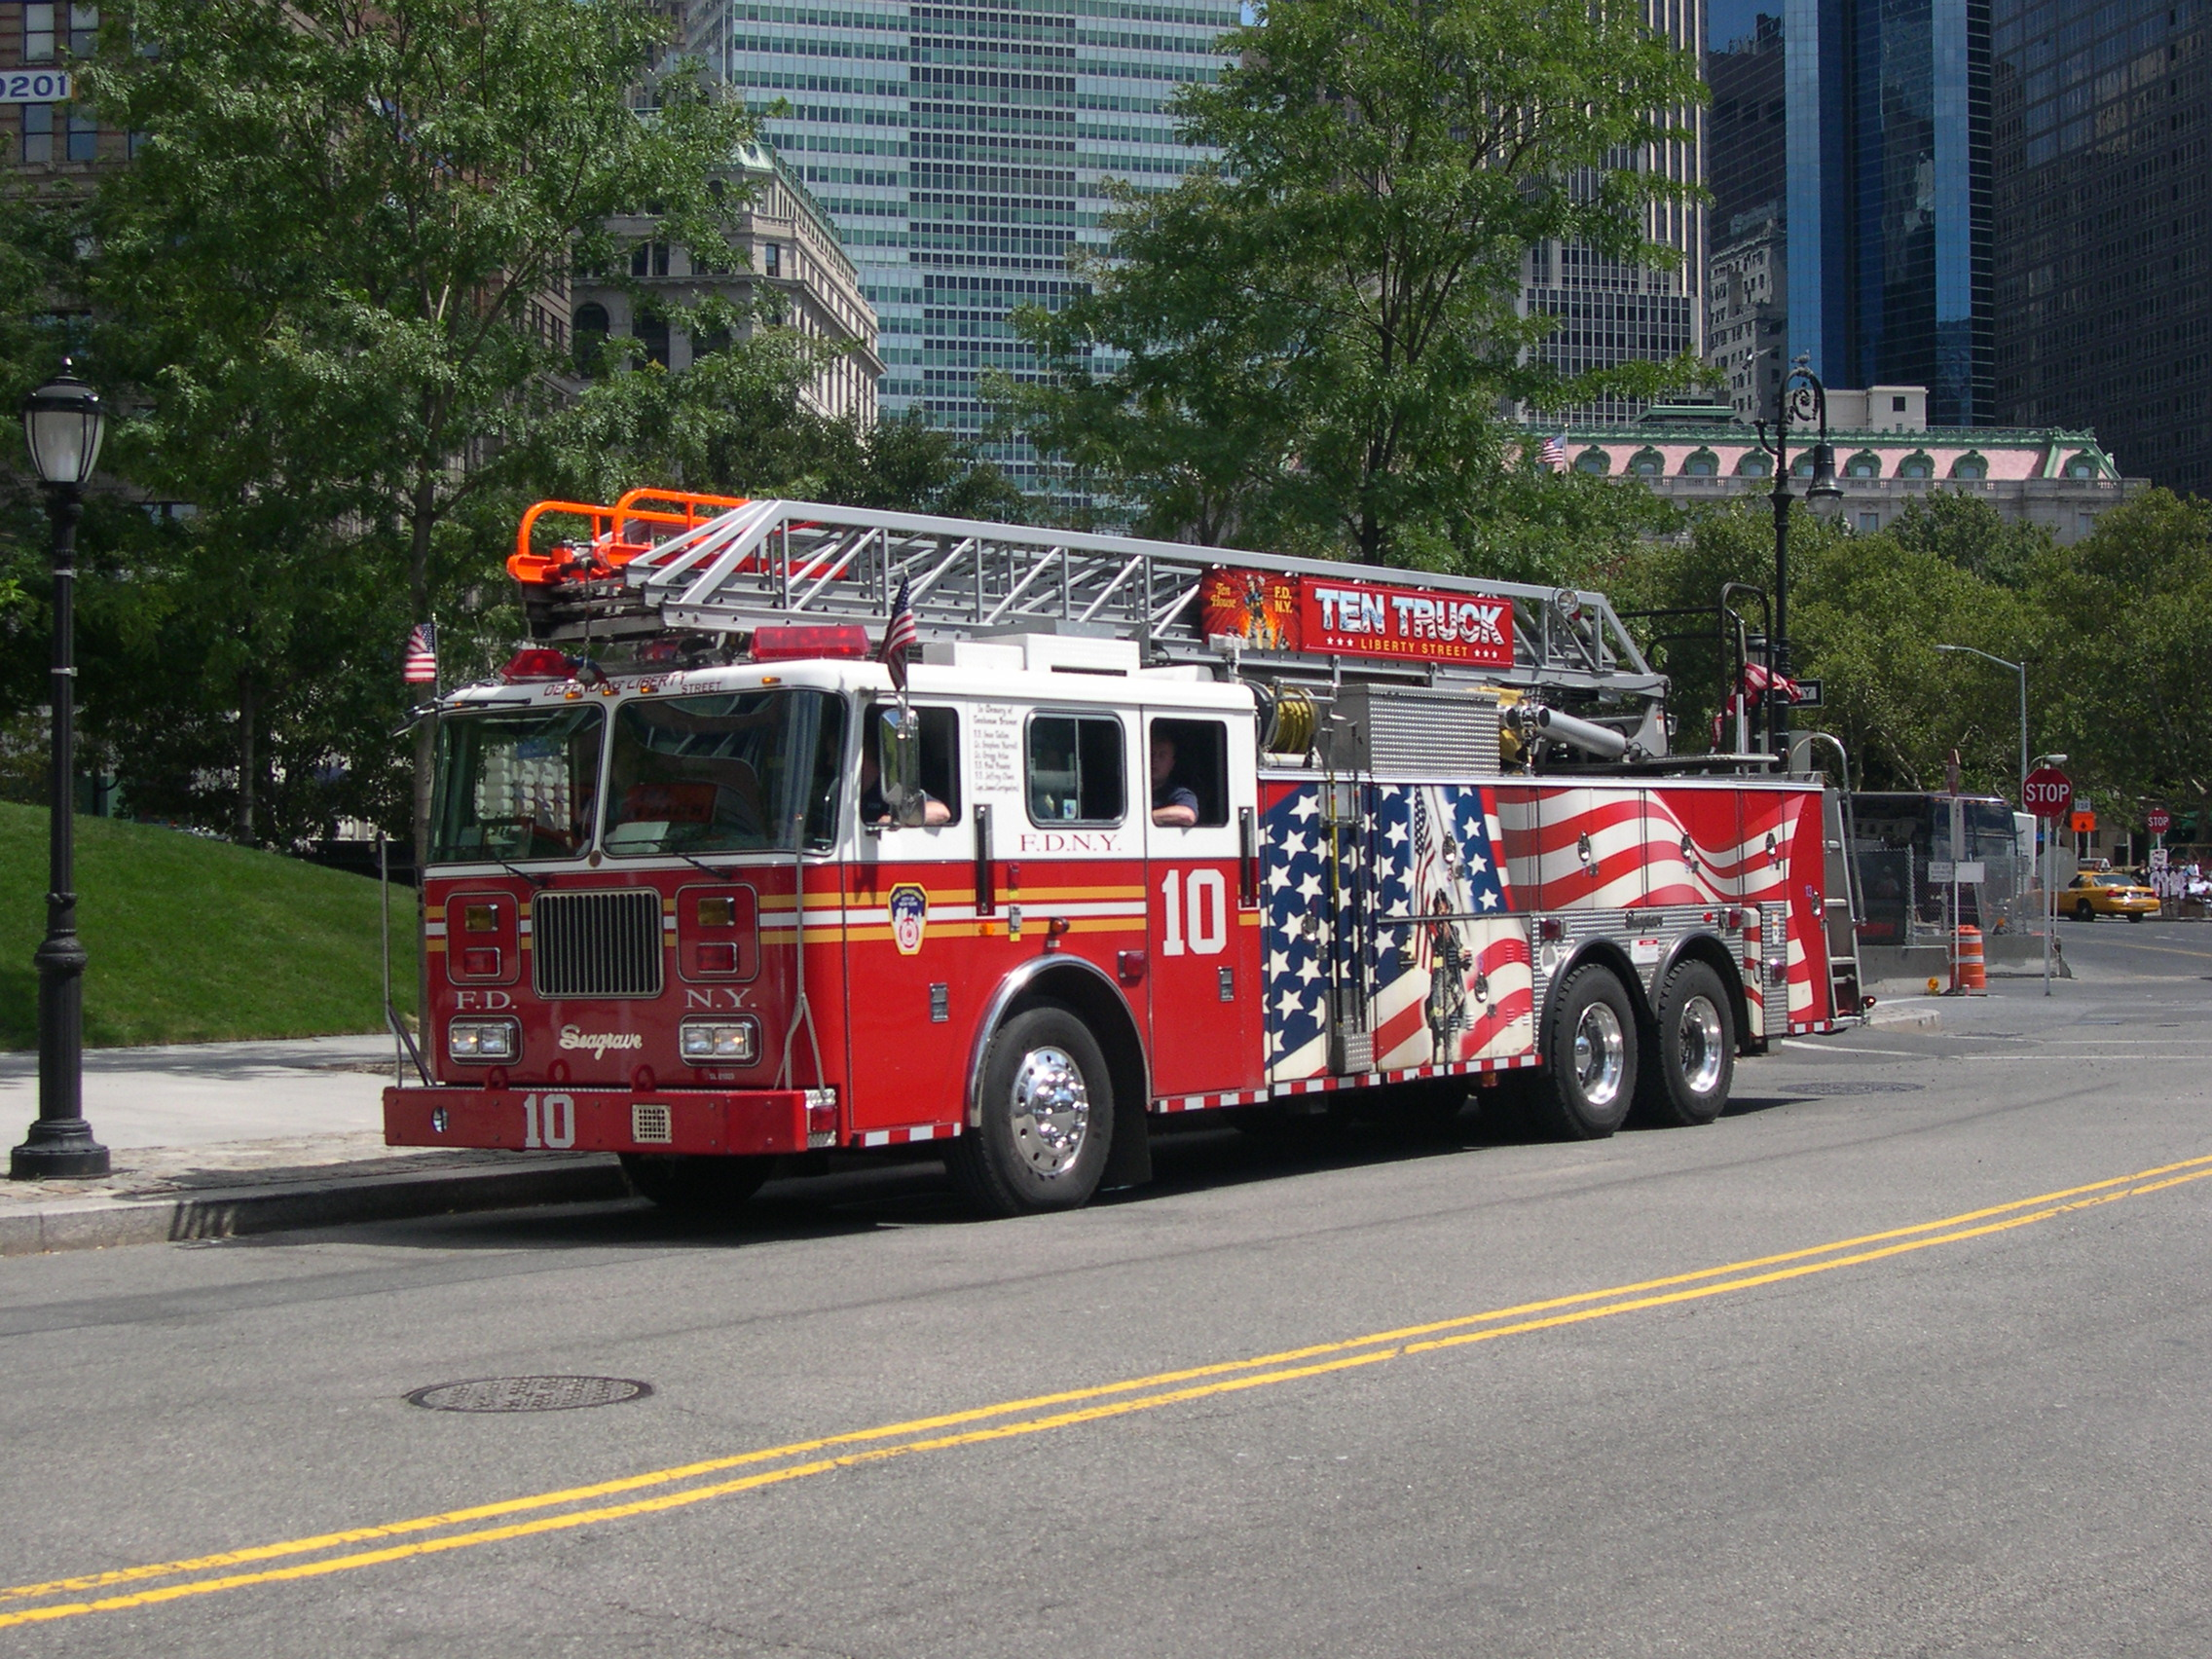 Vehicles   Fire Truck Truck Fire Engine Wallpaper 2272x1704